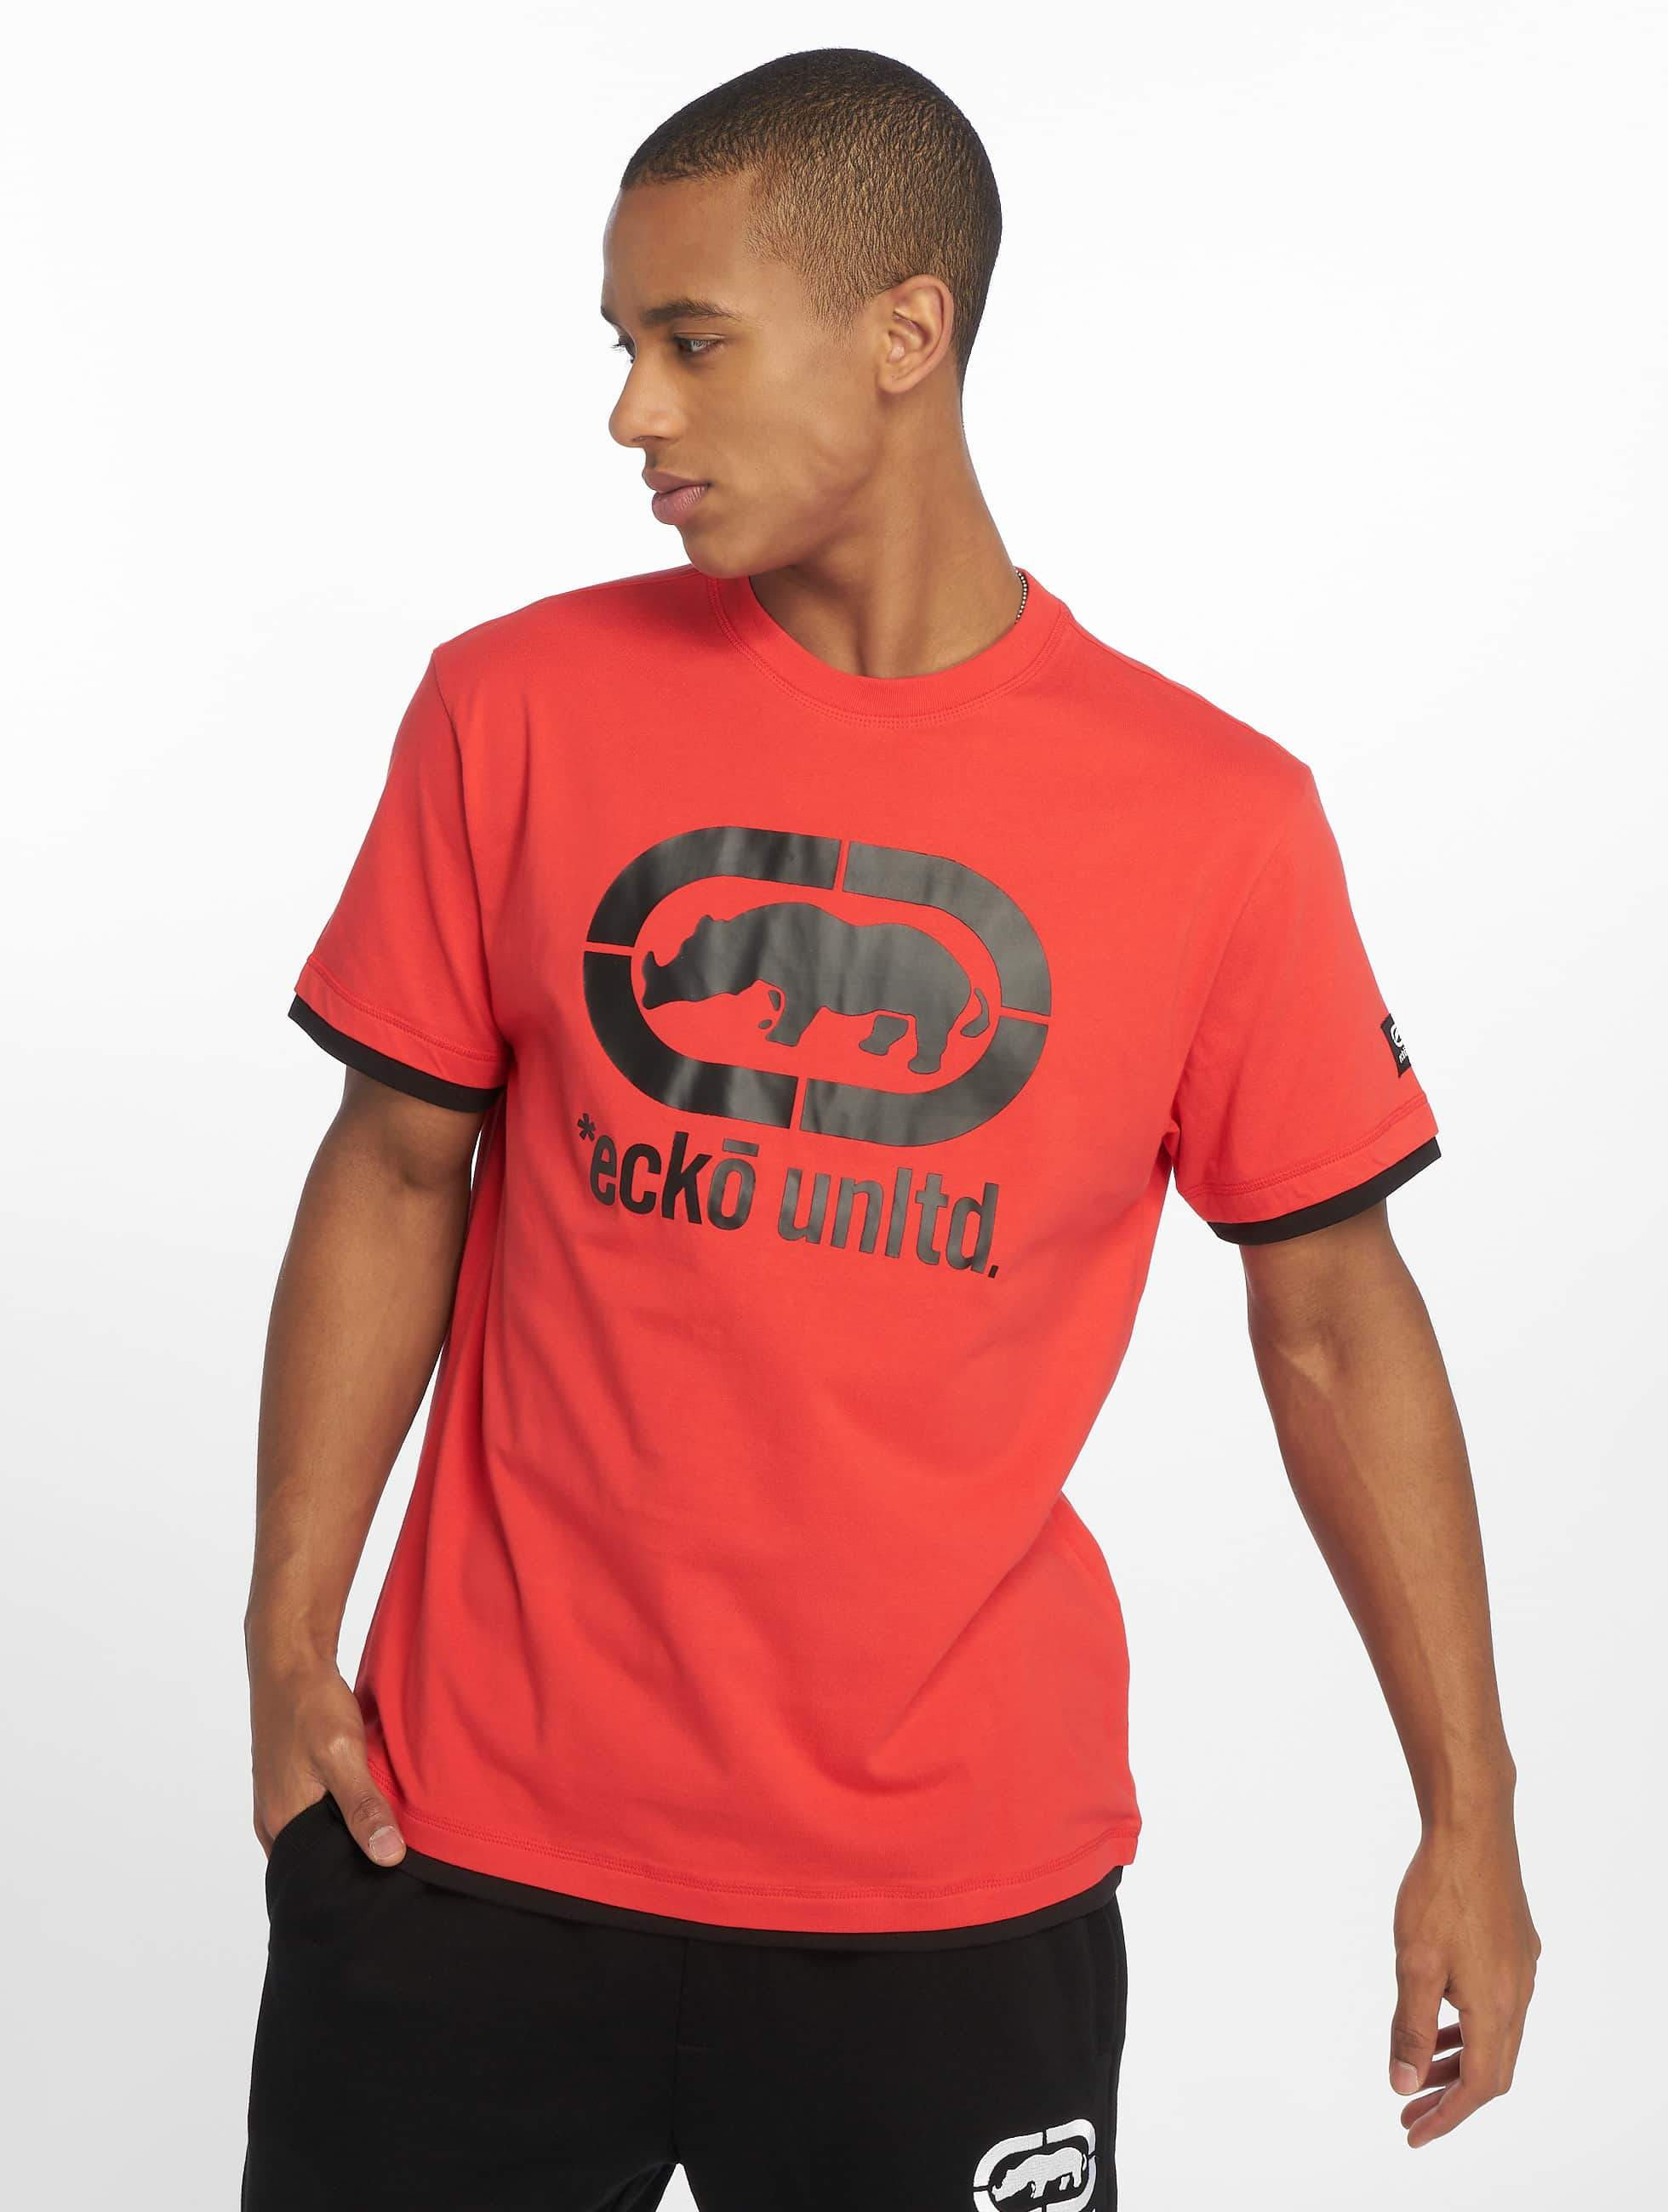 Ecko Unltd. / T-Shirt Best Buddy in red XL